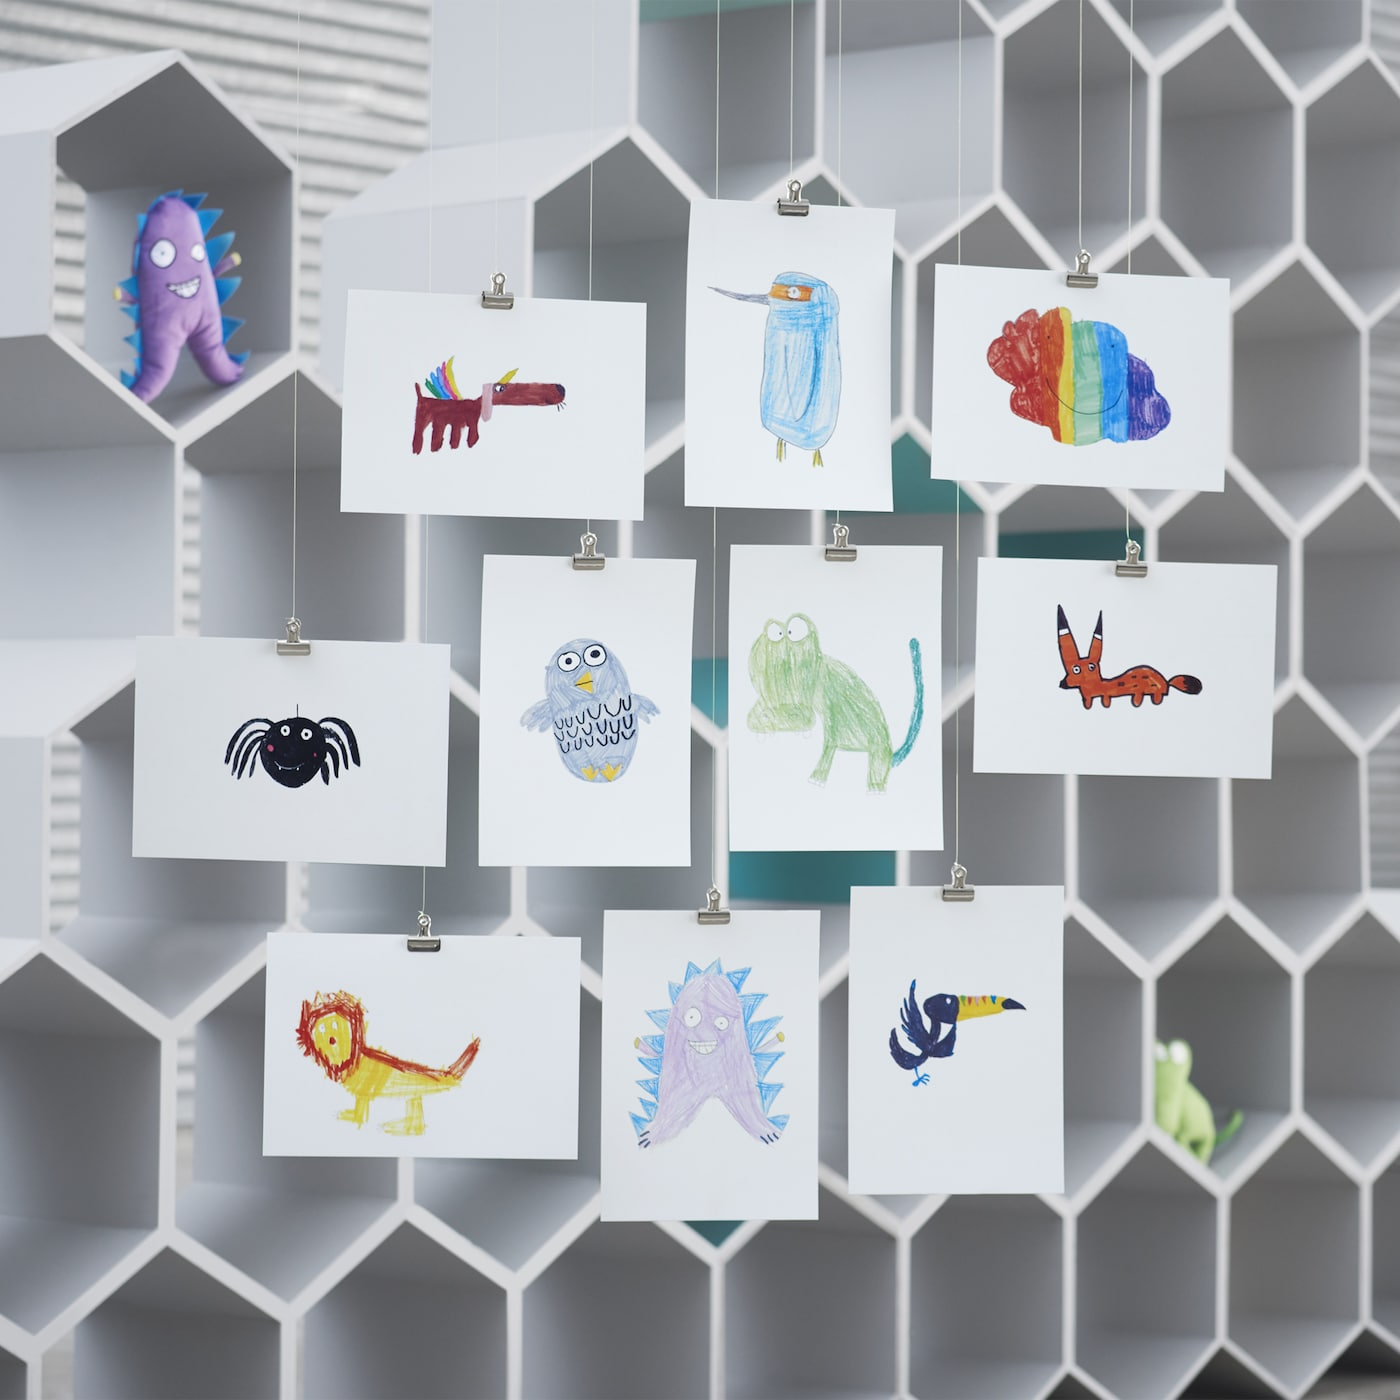 The IKEA SAGOSKATT soft toys are all about kids designing for other kids: it's a collection of imaginative cuddly creatures, all winning ideas from our annual kids' drawing competition. There's an egg-shaped owl, a toucan with a rainbow beak and more!